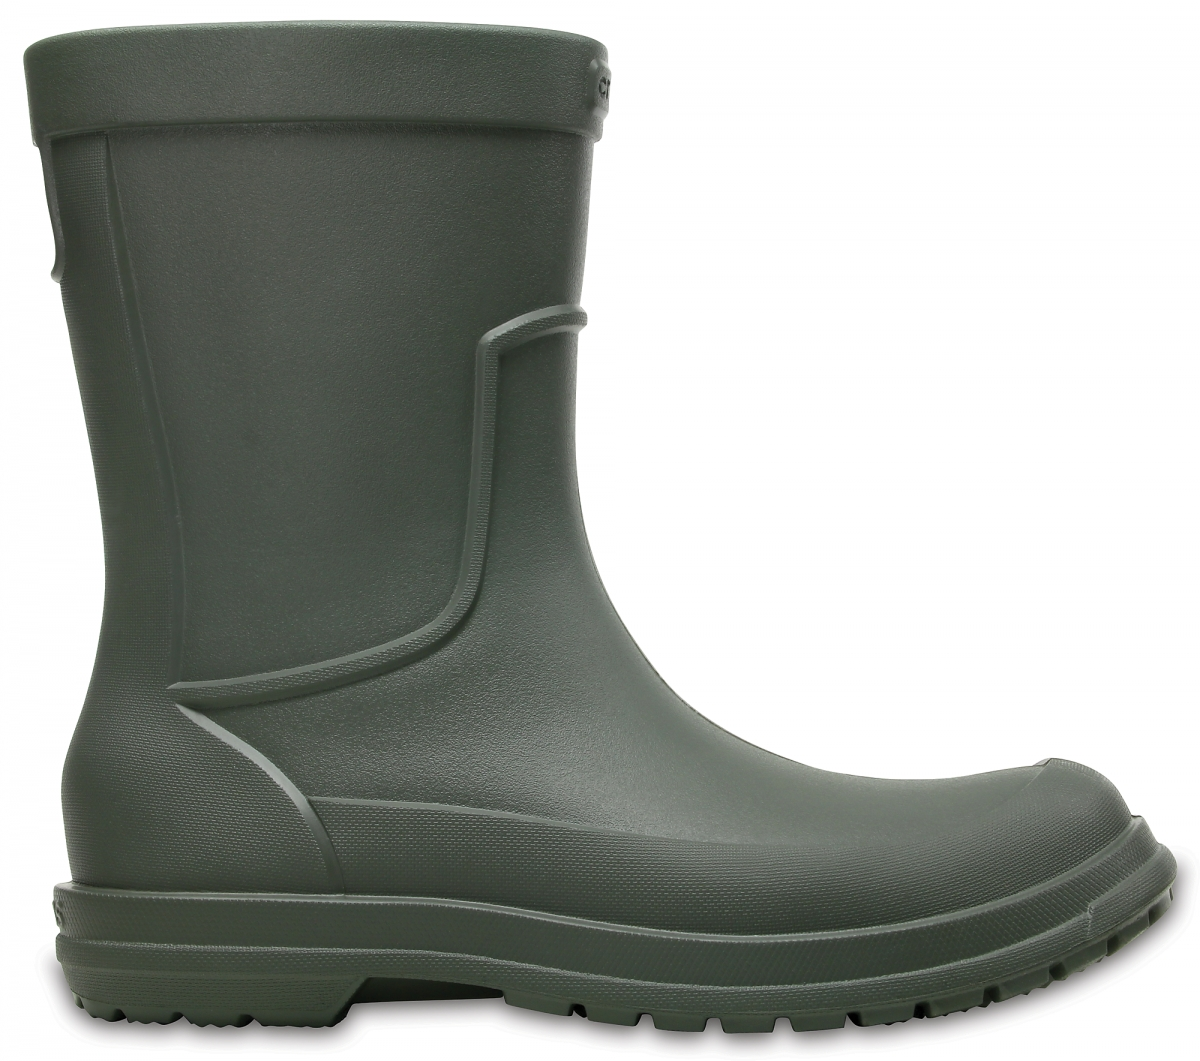 Crocs AllCast Rain Boot Men - Dusty Olive, M10 (43-44)